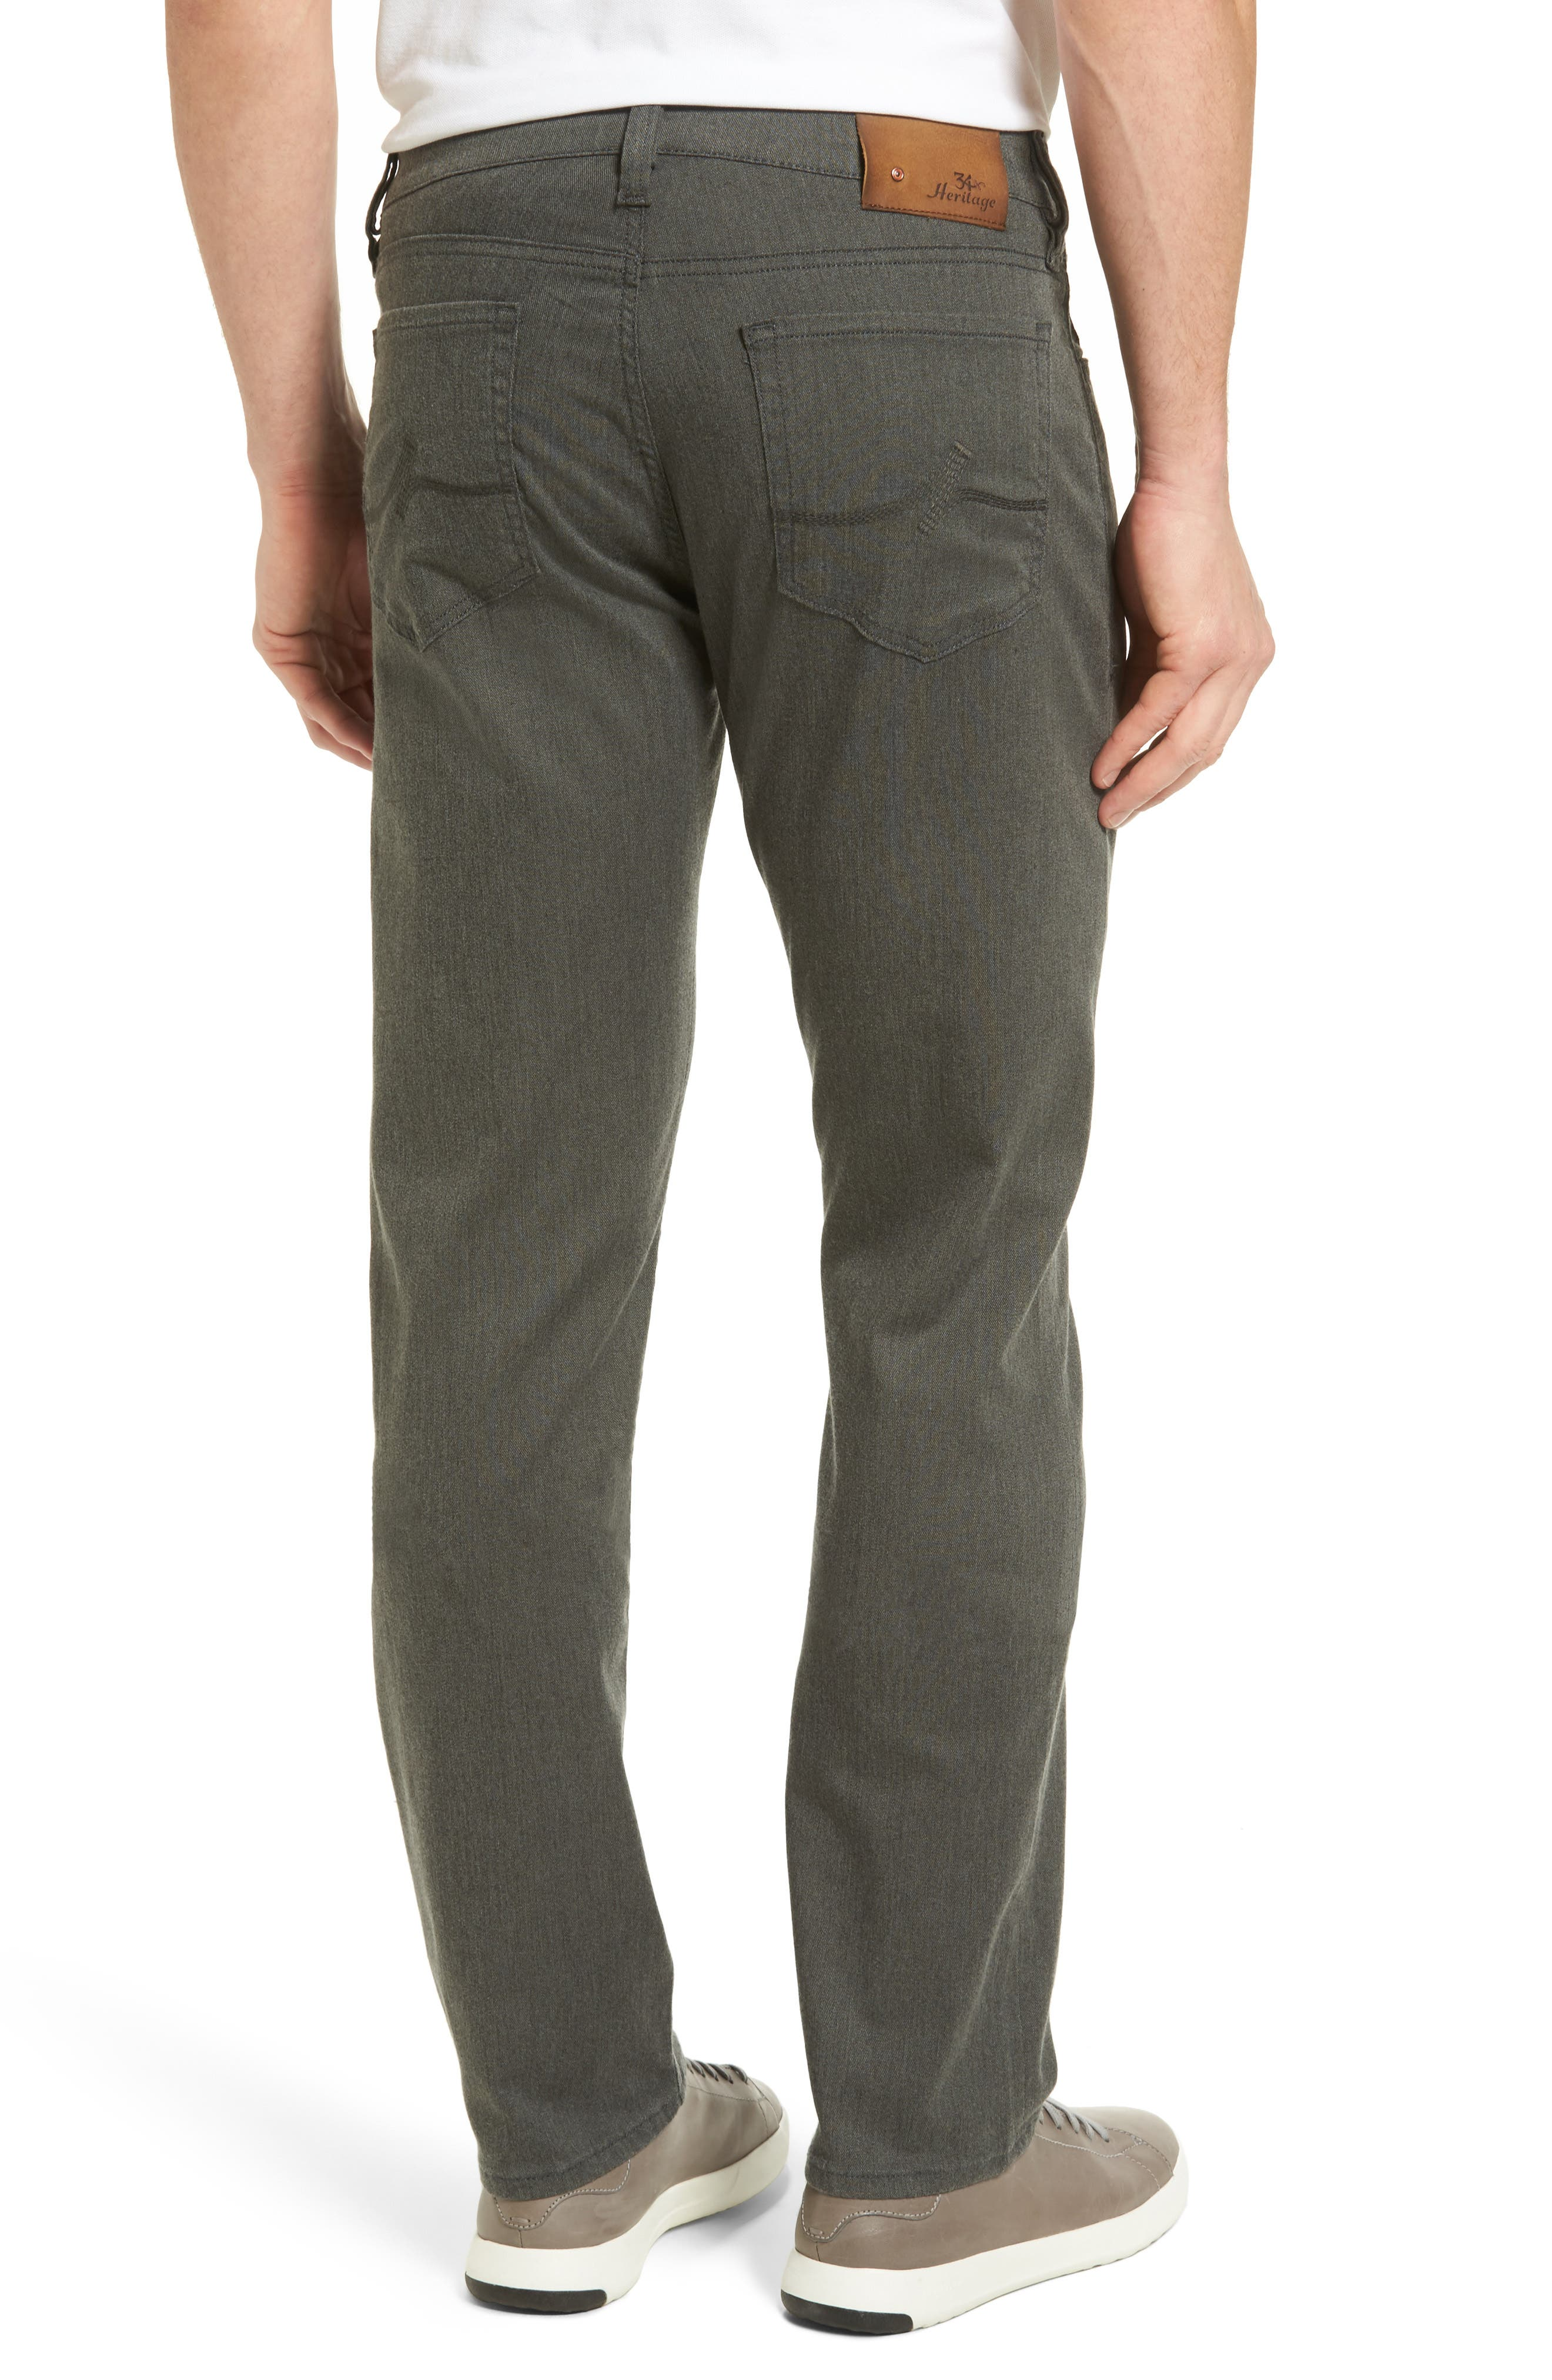 34 HERITAGE,                             Courage Straight Leg Jeans,                             Alternate thumbnail 2, color,                             020